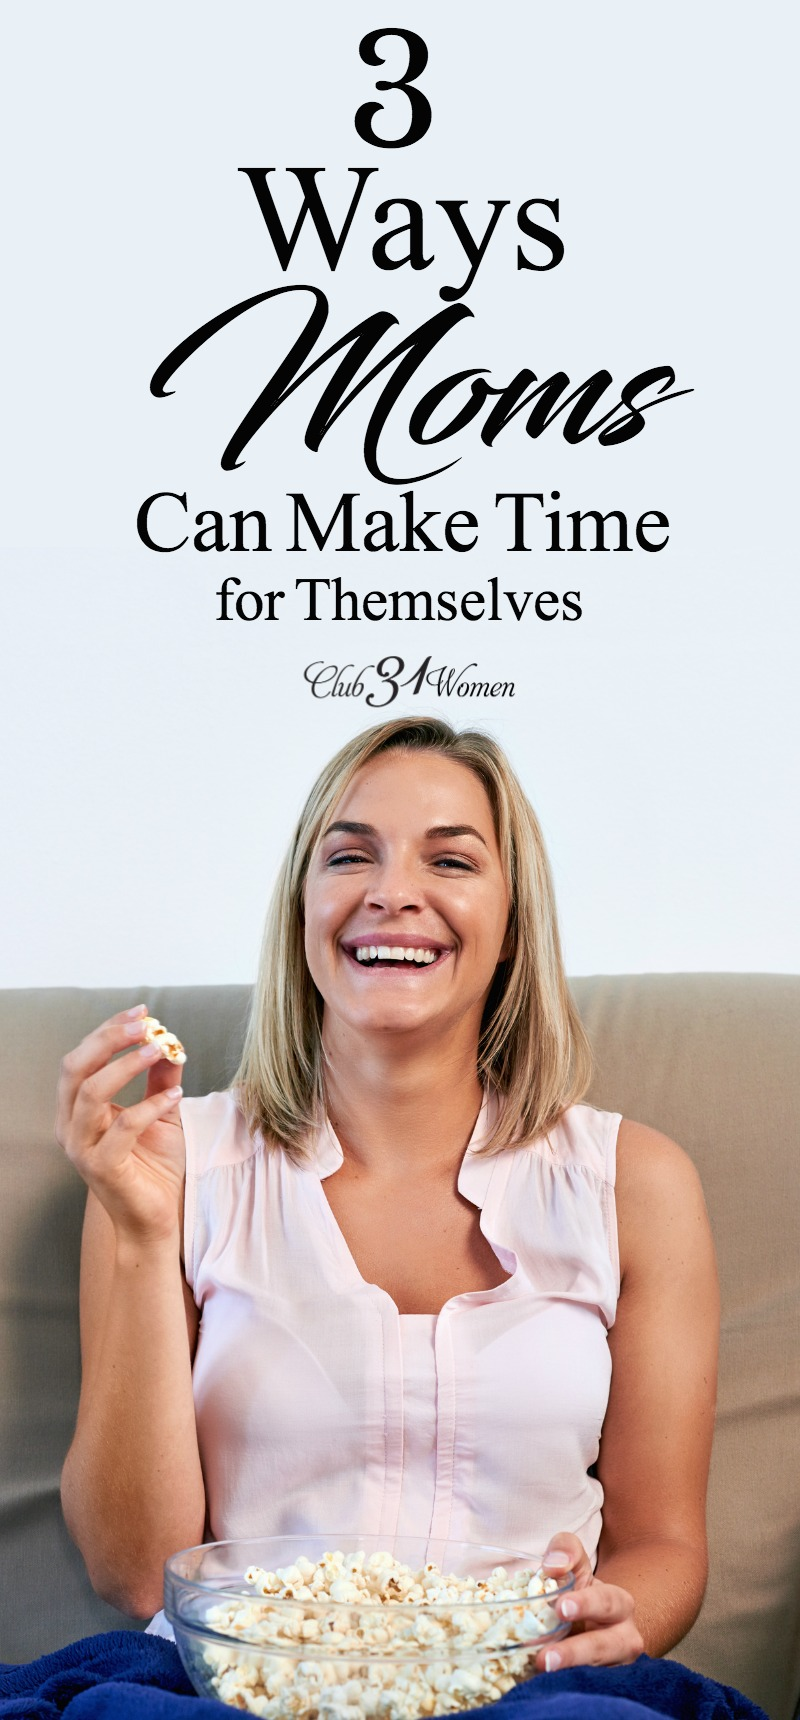 As moms, we need to make time for ourselves in order to stay refreshed and be at our best for our family. Here are a few ways to do that... via @Club31Women